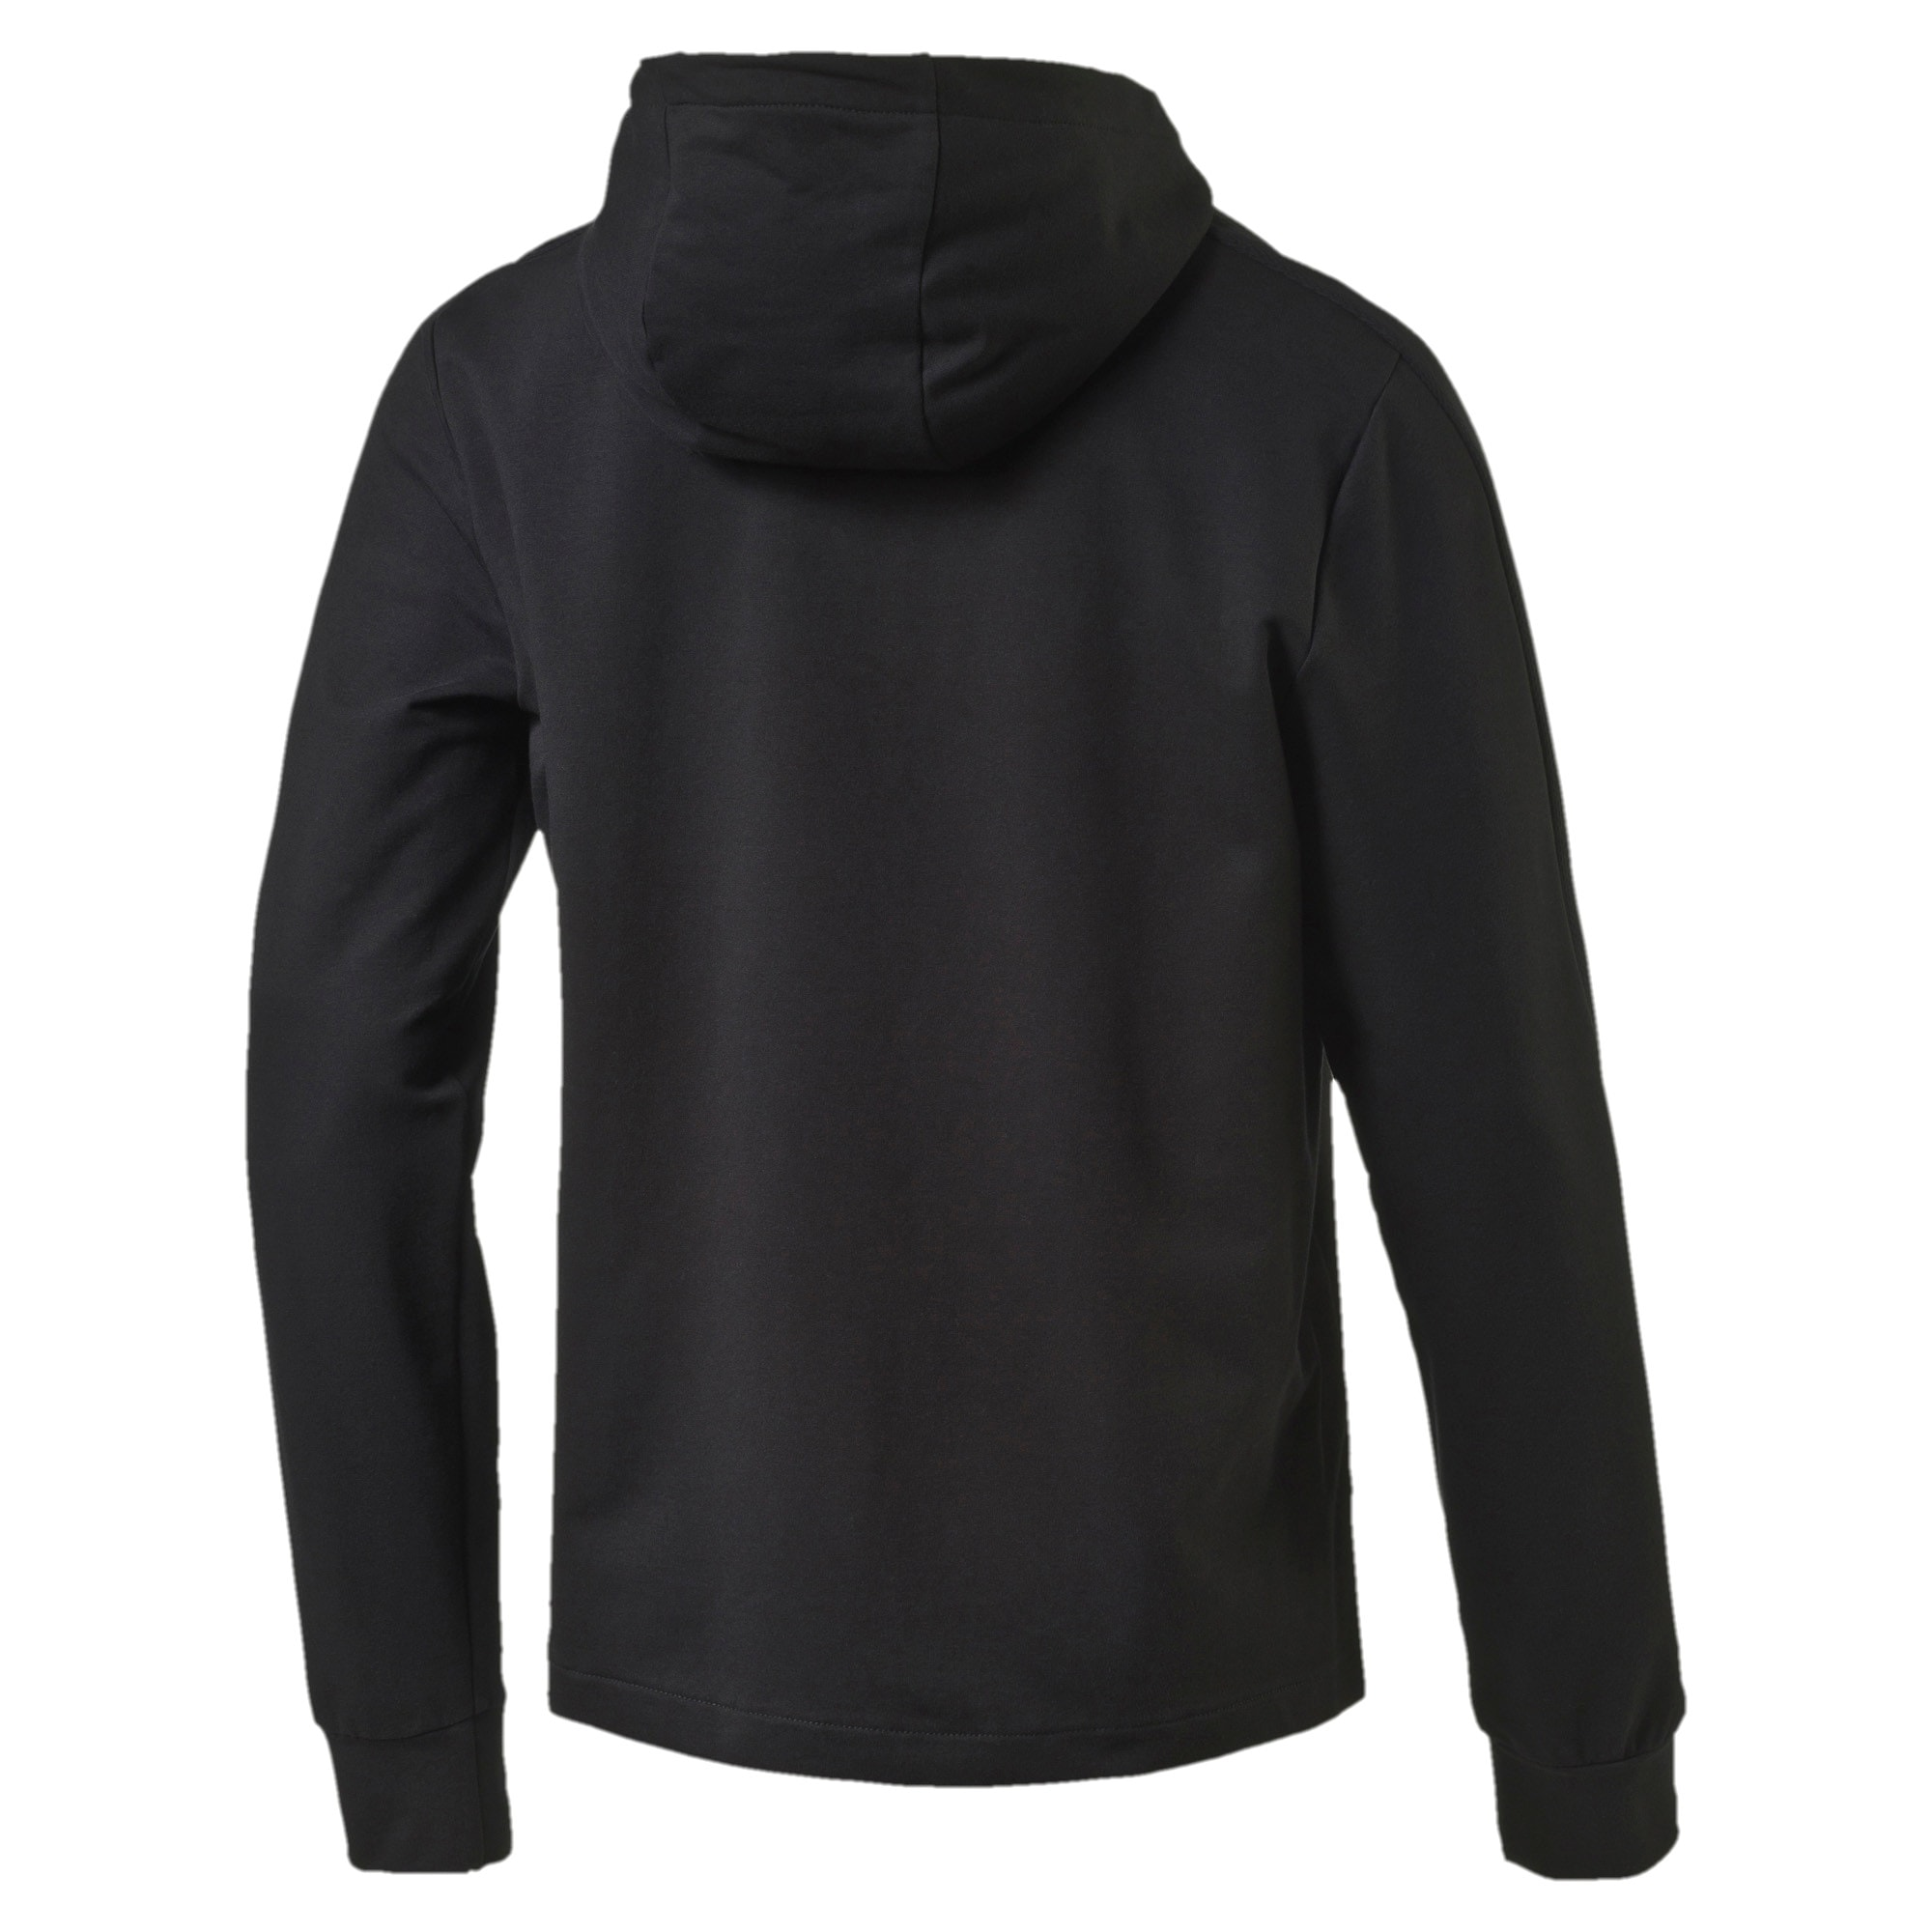 Thumbnail 3 of StretchLite Zip-Up Hoodie, Cotton Black, medium